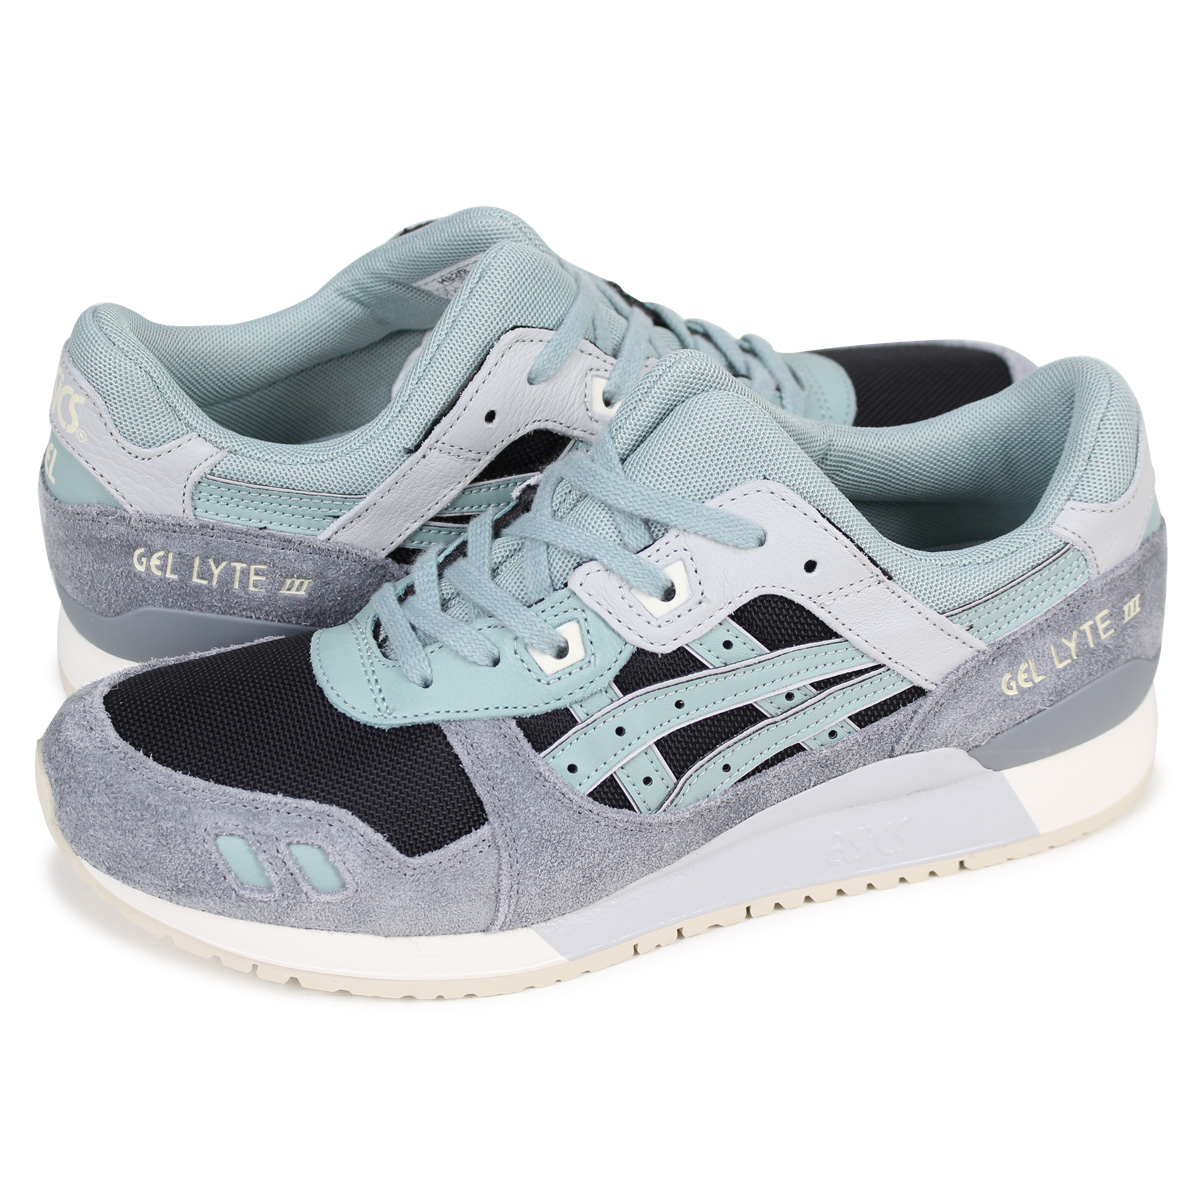 wholesale dealer bdf5b c0284 asics Tiger GEL-LYTE III ASICS tiger gel light 3 sneakers H820L-9046 men  blue [2/20 Shinnyu load] [182]